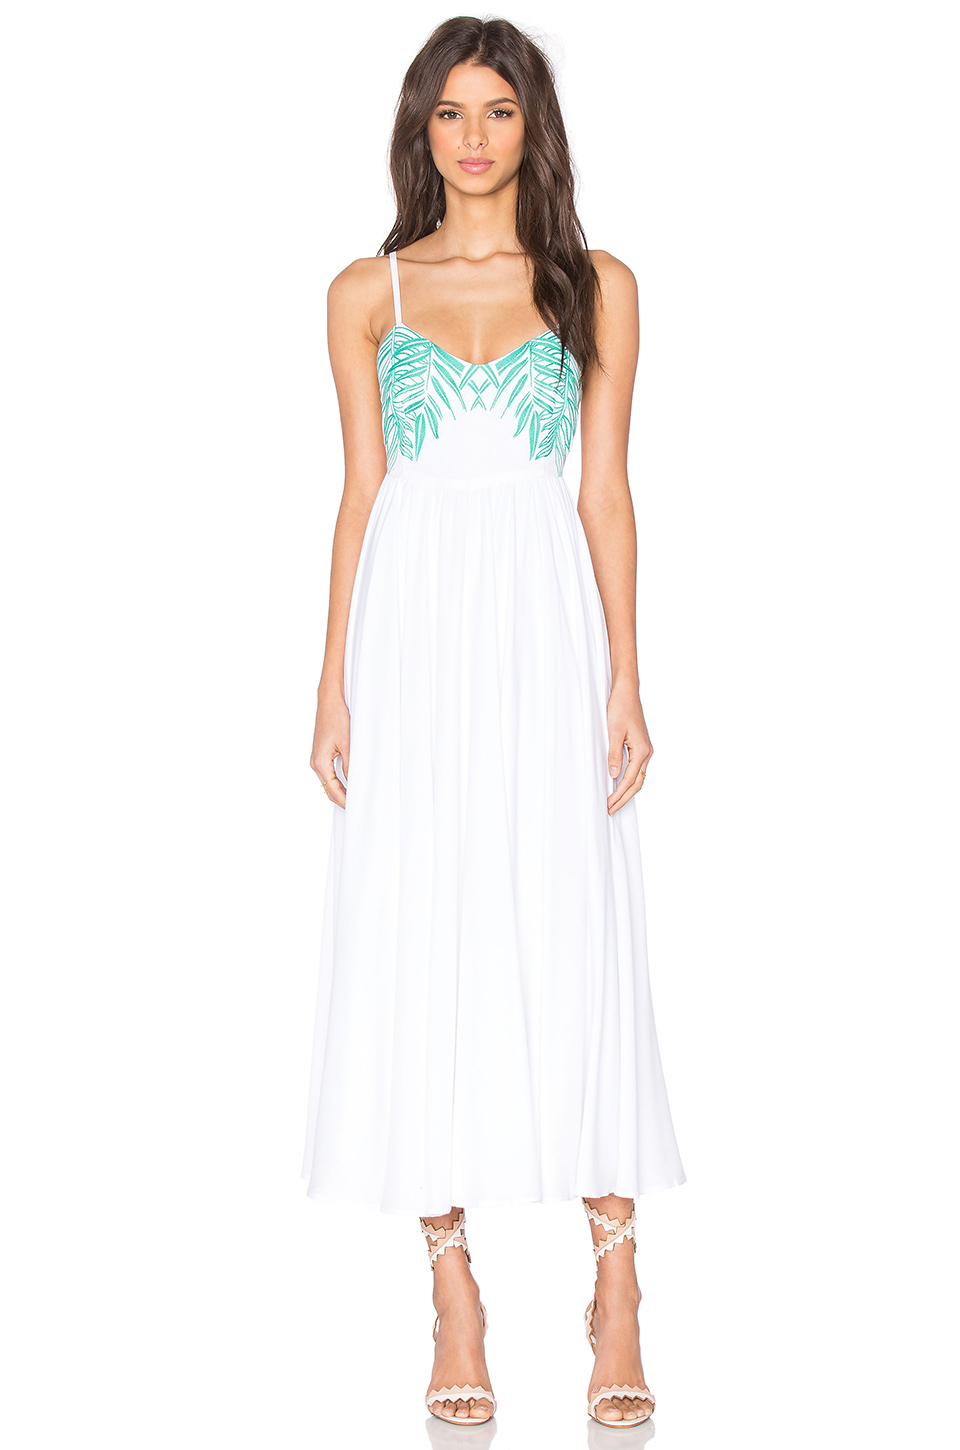 Mara hoffman leaf embroidered tie back dress in white lyst